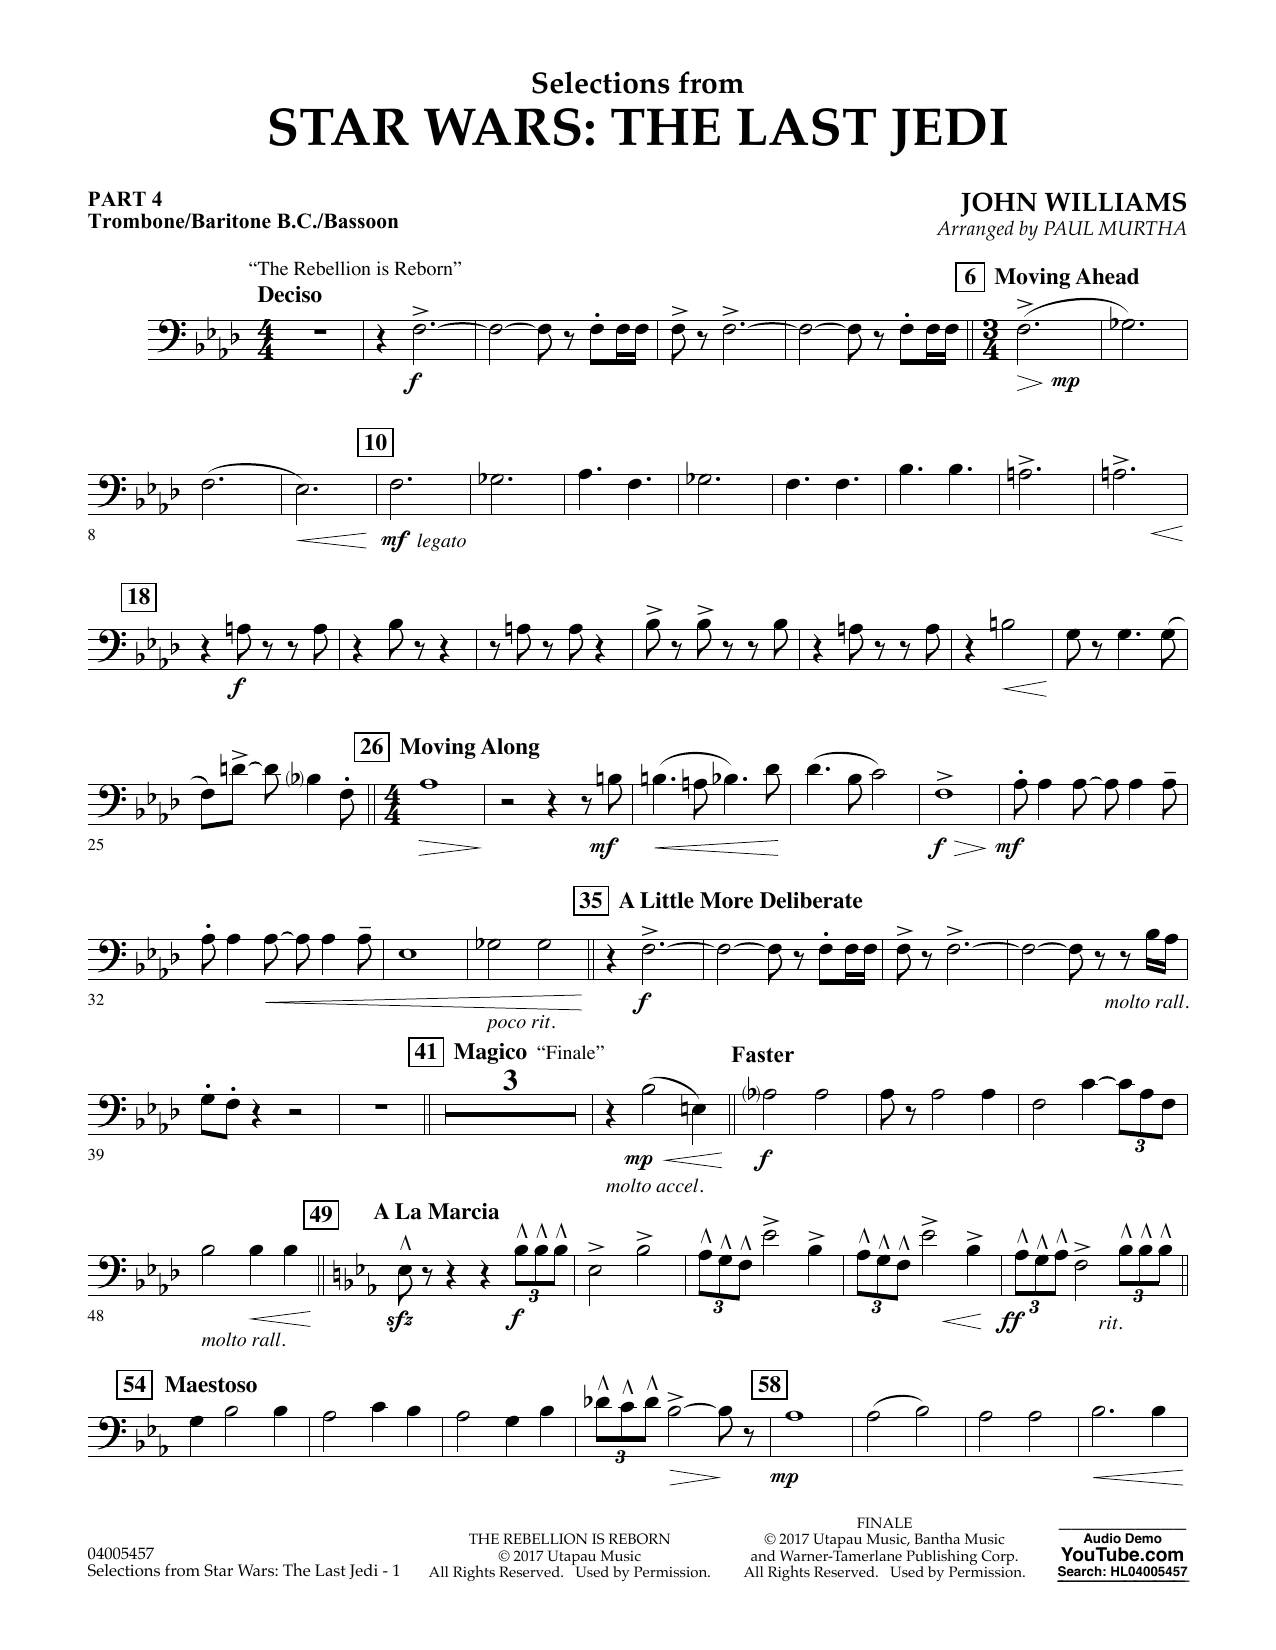 Paul Murtha Selections from Star Wars: The Last Jedi - Pt.4 - Trombone/Bar. B.C./Bsn. sheet music notes and chords. Download Printable PDF.